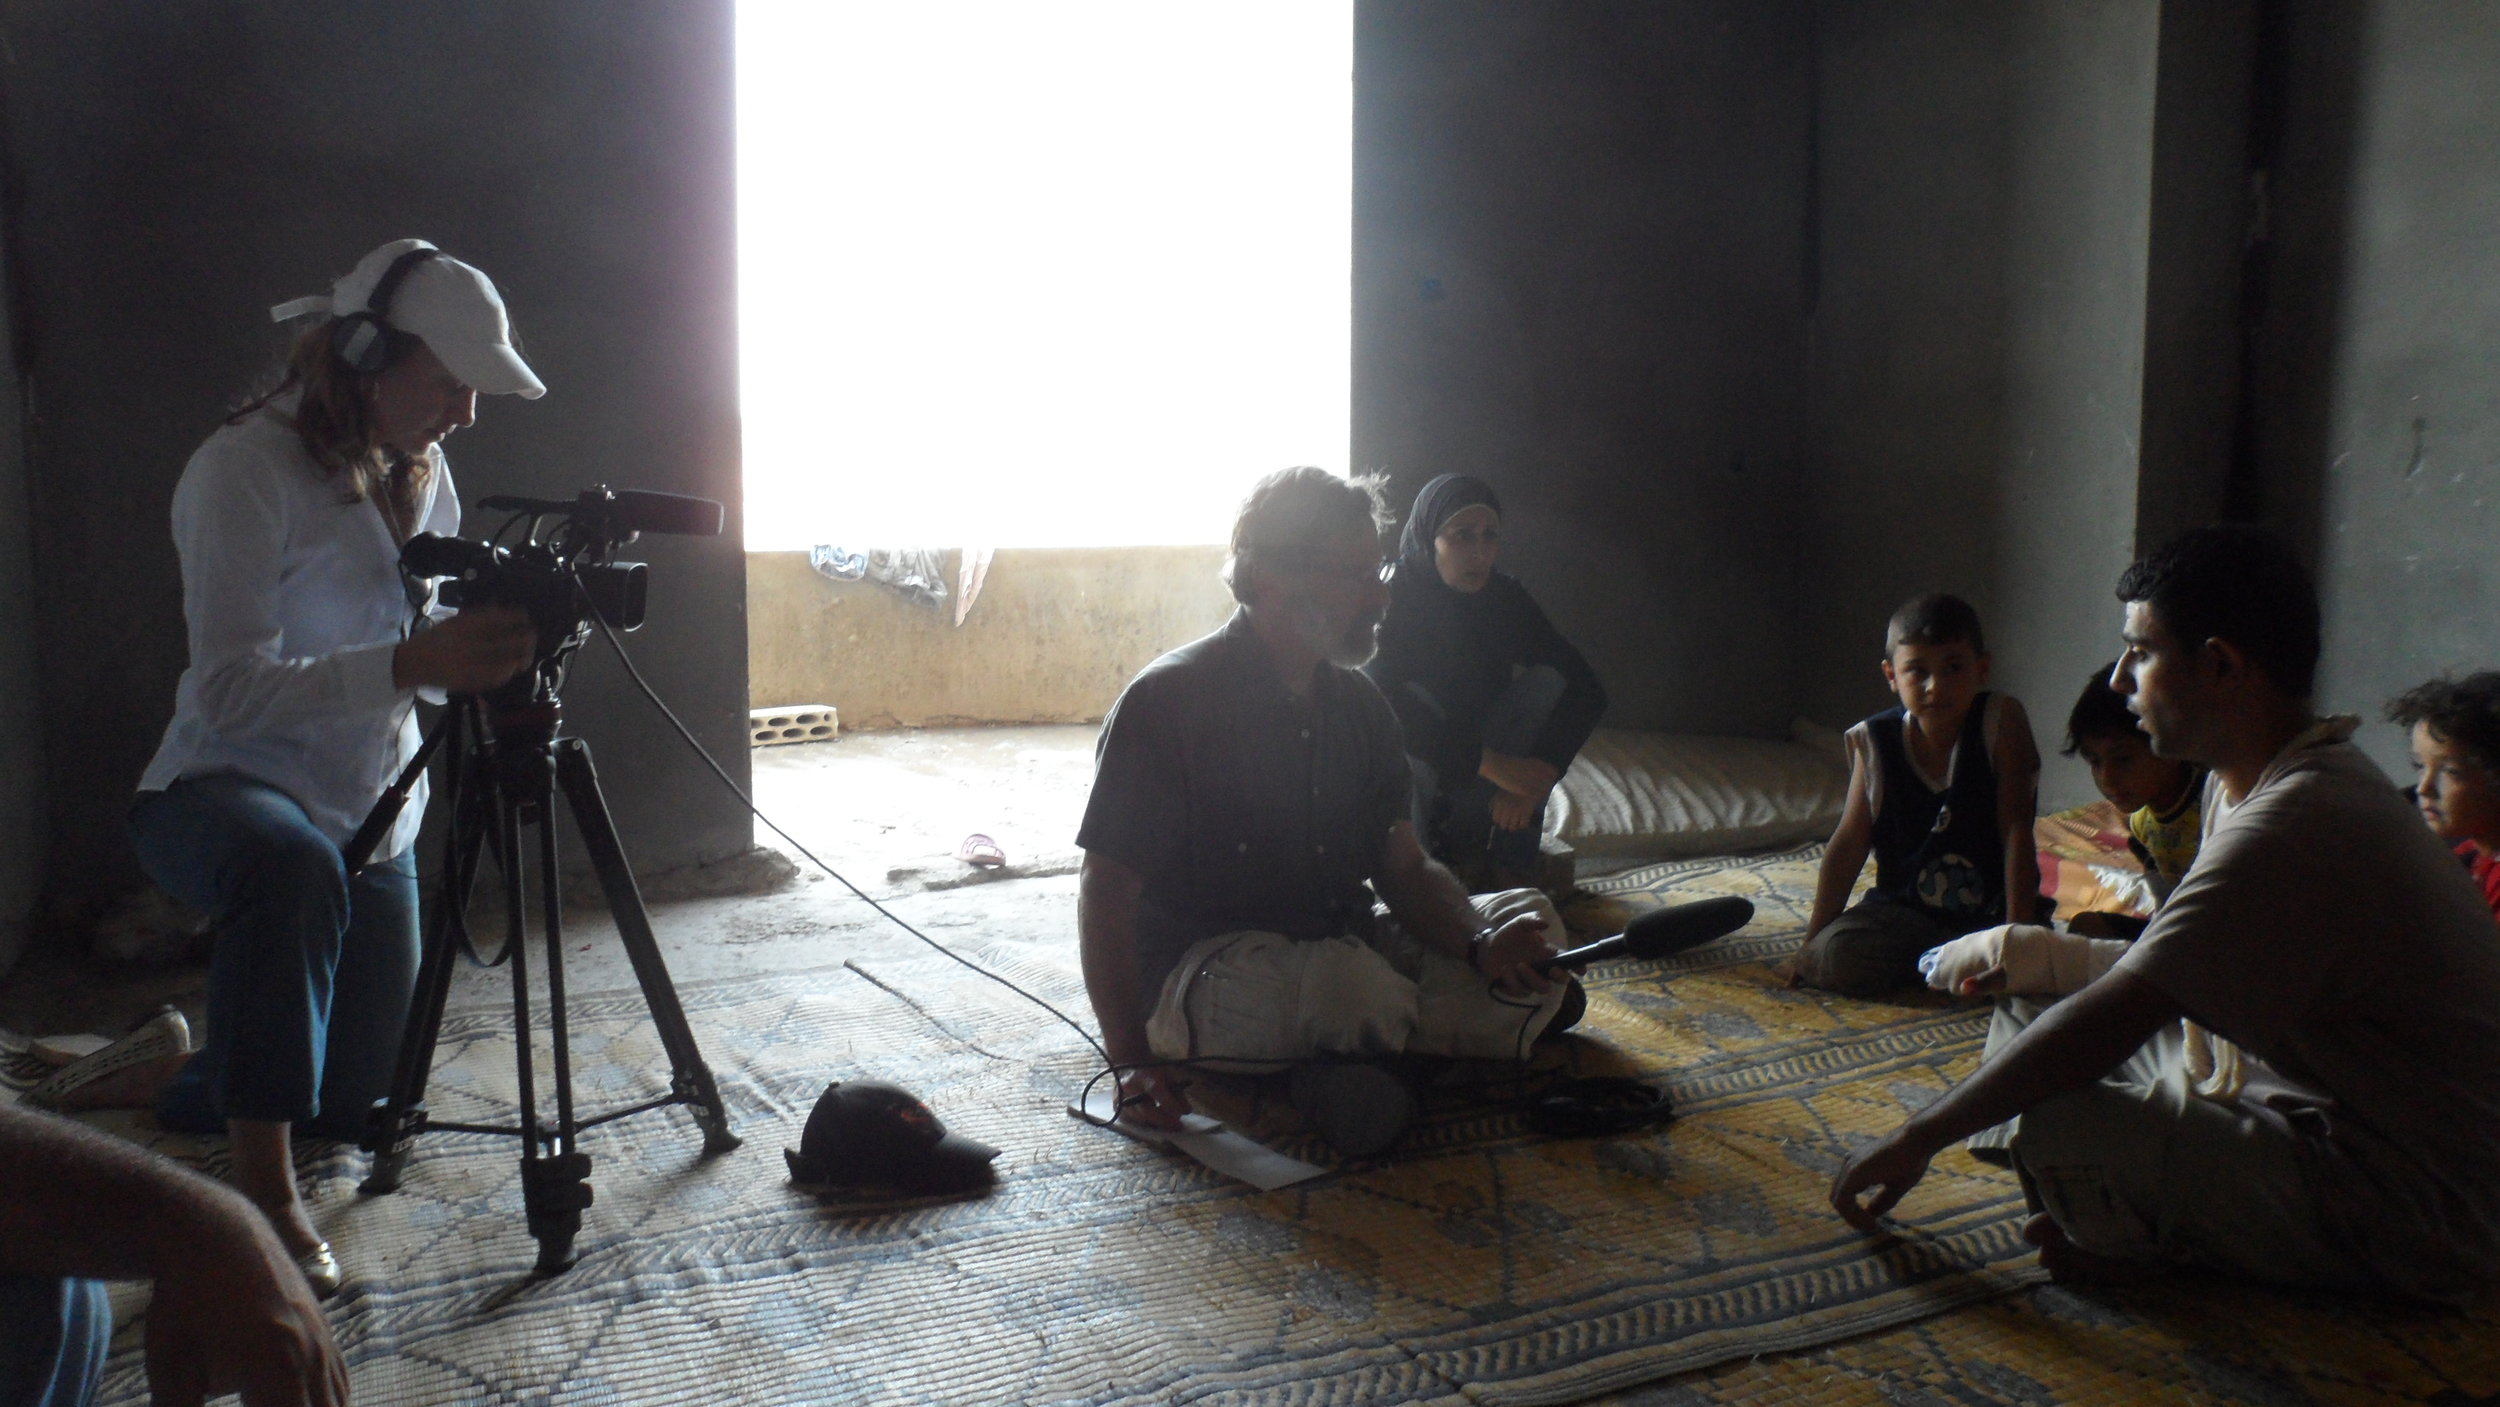 Interviewing a wounded Syrian rebel, with videographer Paige Kollack, Northern Lebanon, 2012.